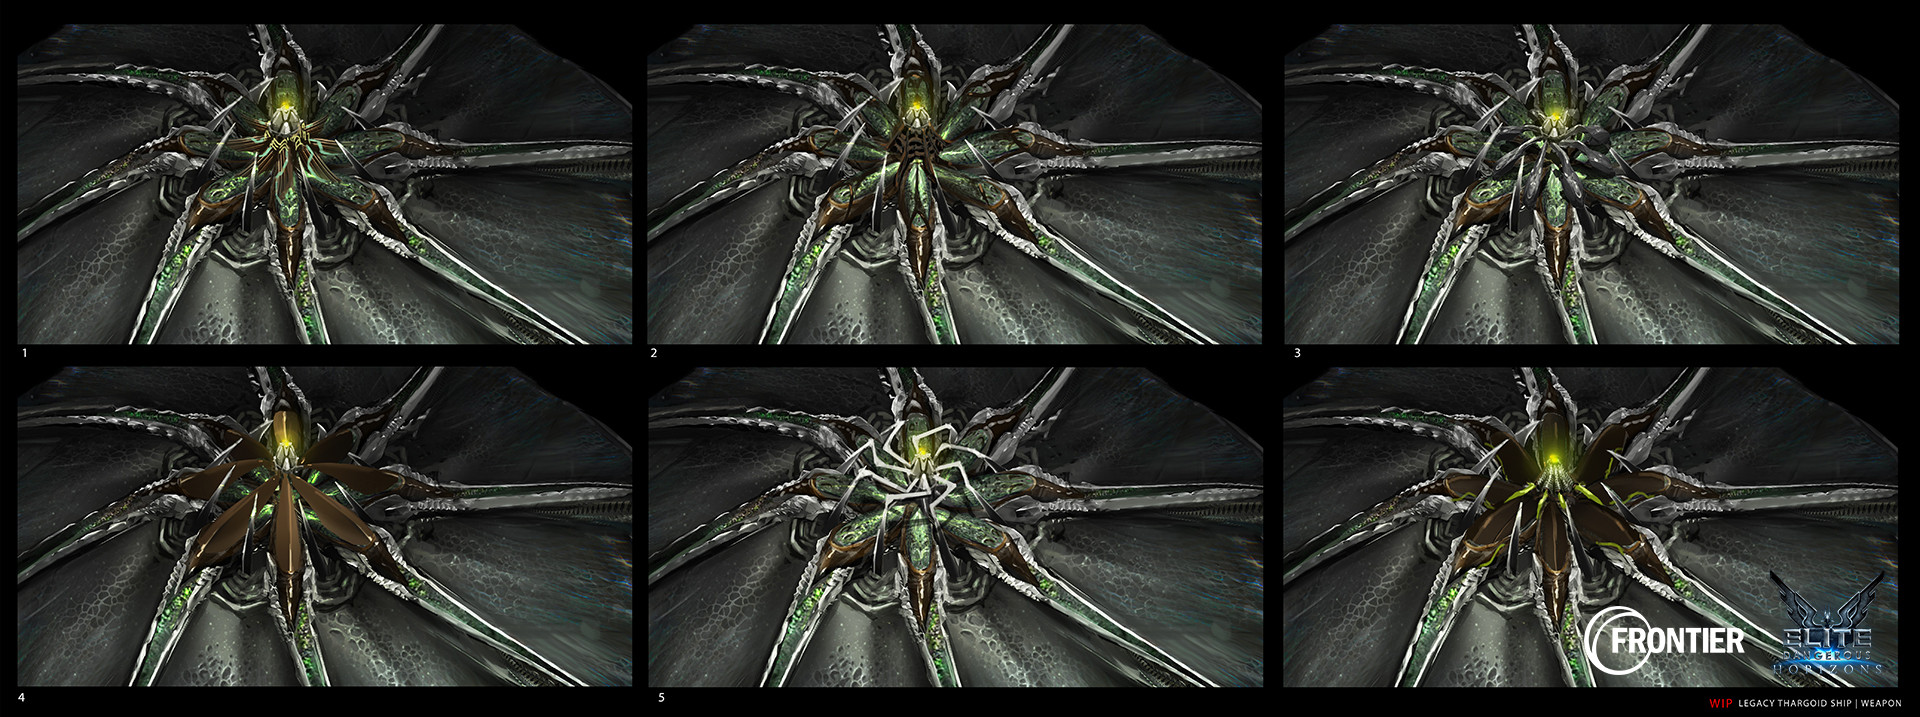 Emilie rinna legacy thargoid weapons